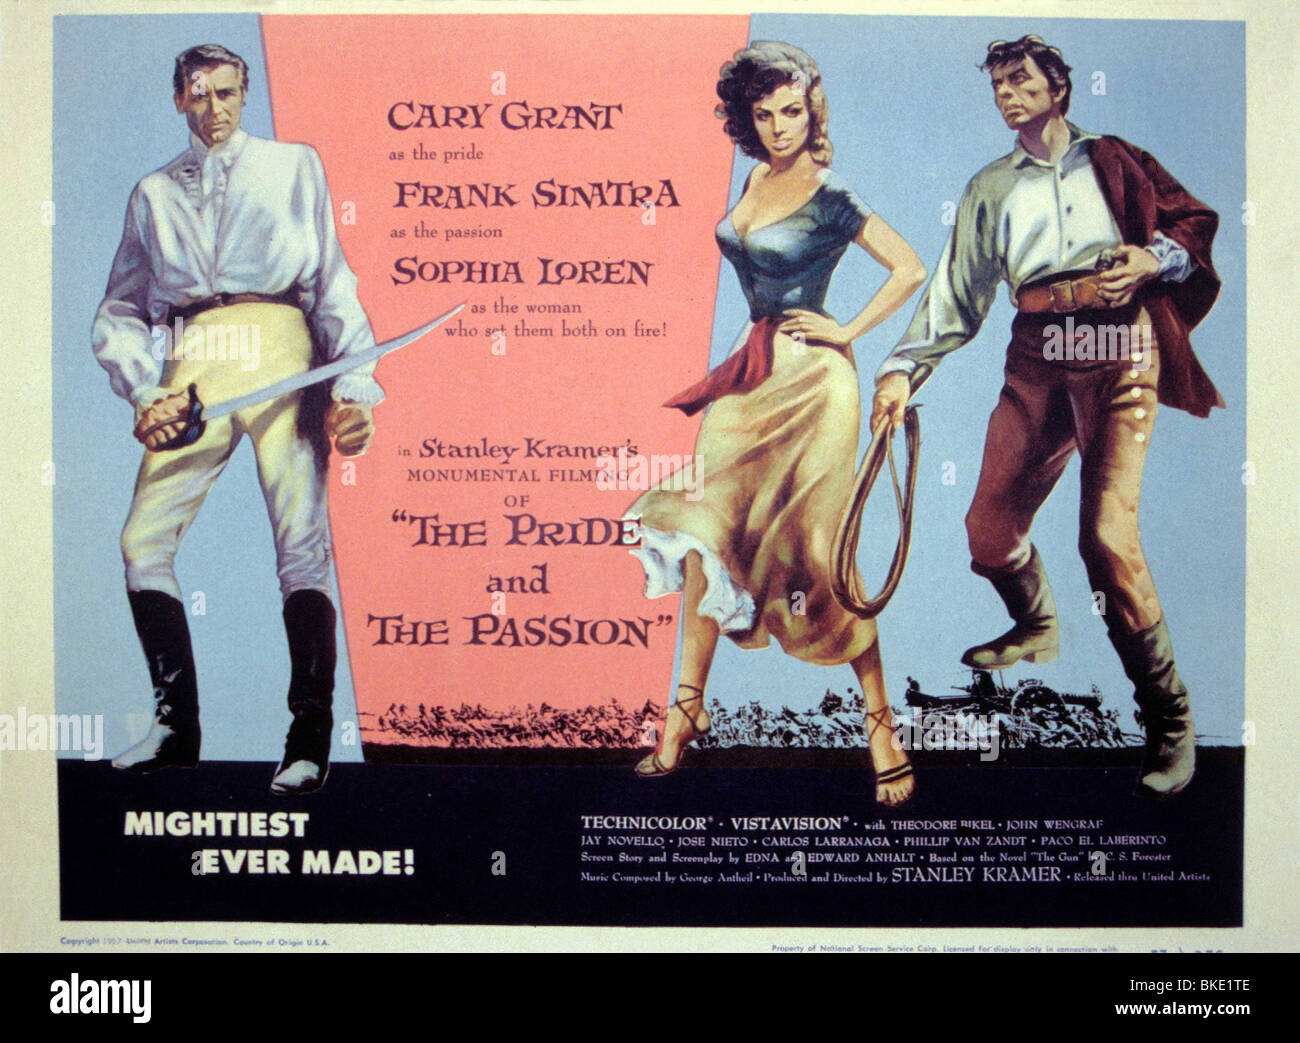 THE PRIDE AND THE PASSION (1957) POSTER PRPS 002 - Stock Image